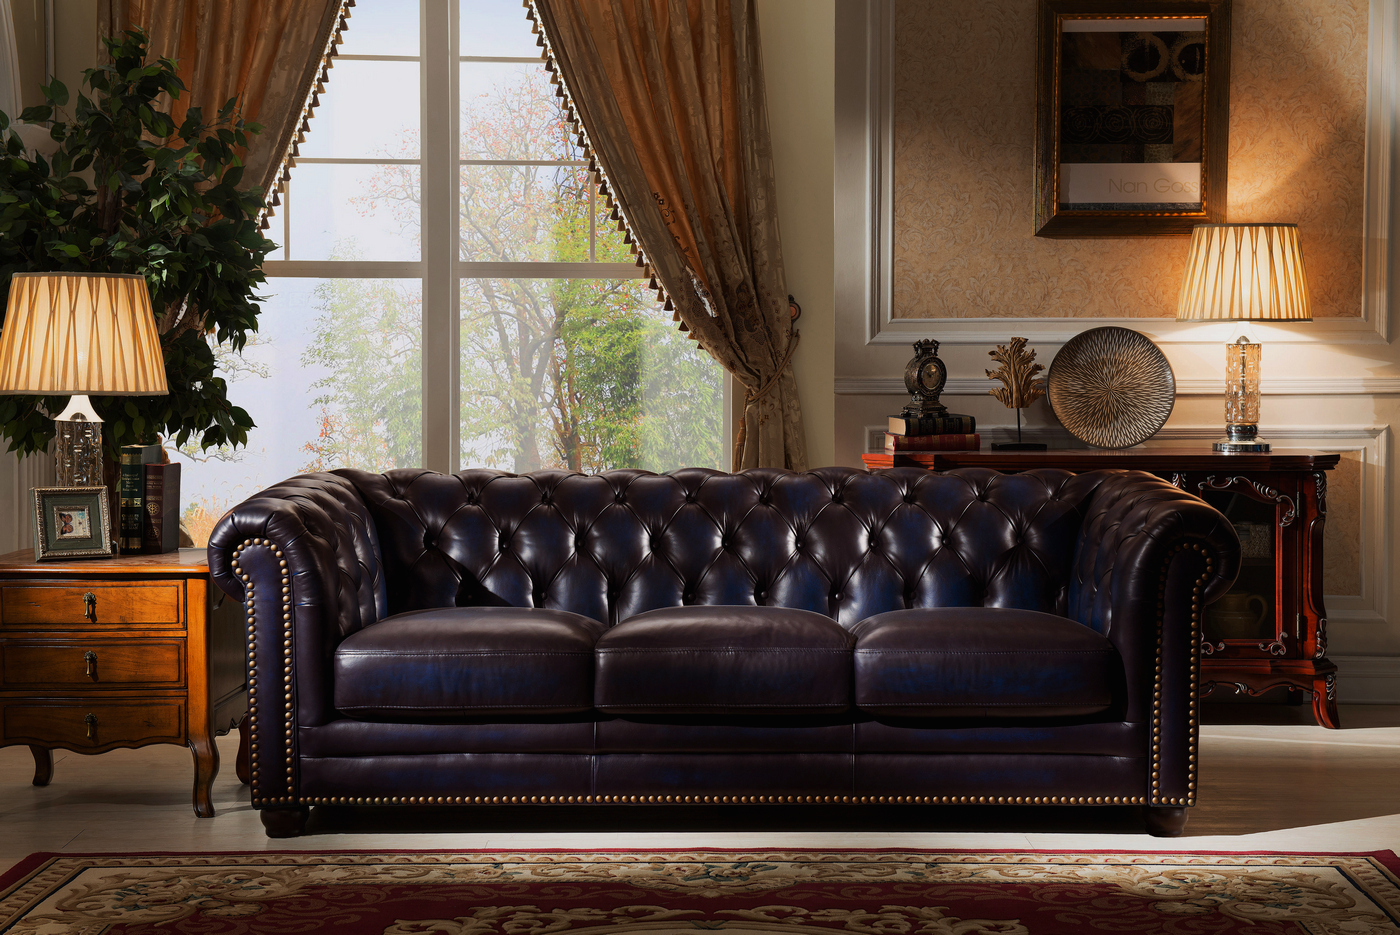 navy leather chesterfield sofa wesley hall 1904 dynasty 100 genuine 3 pc set in